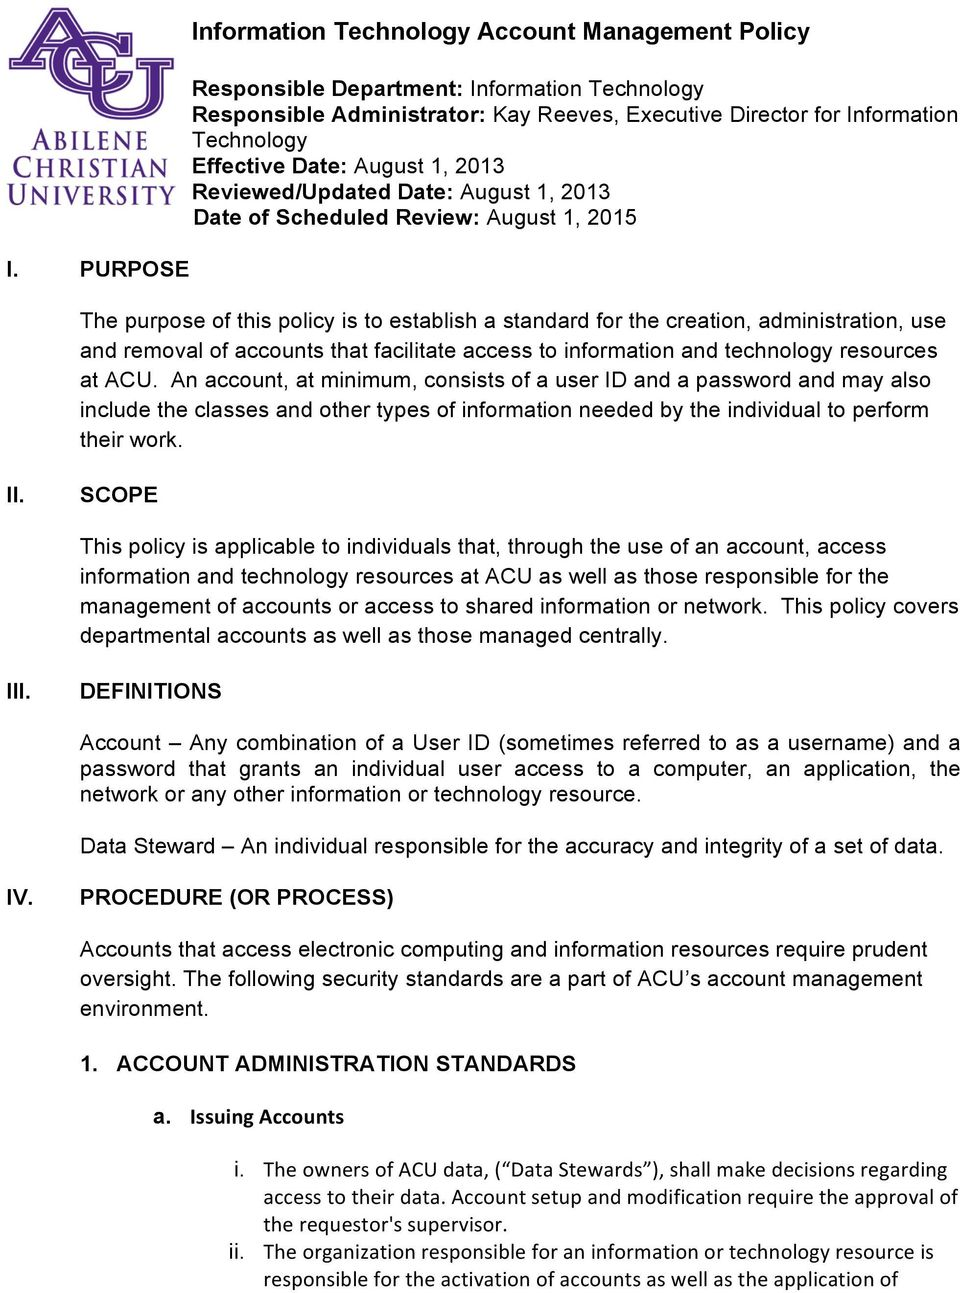 Information Technology Management: Information Technology Account Management Policy